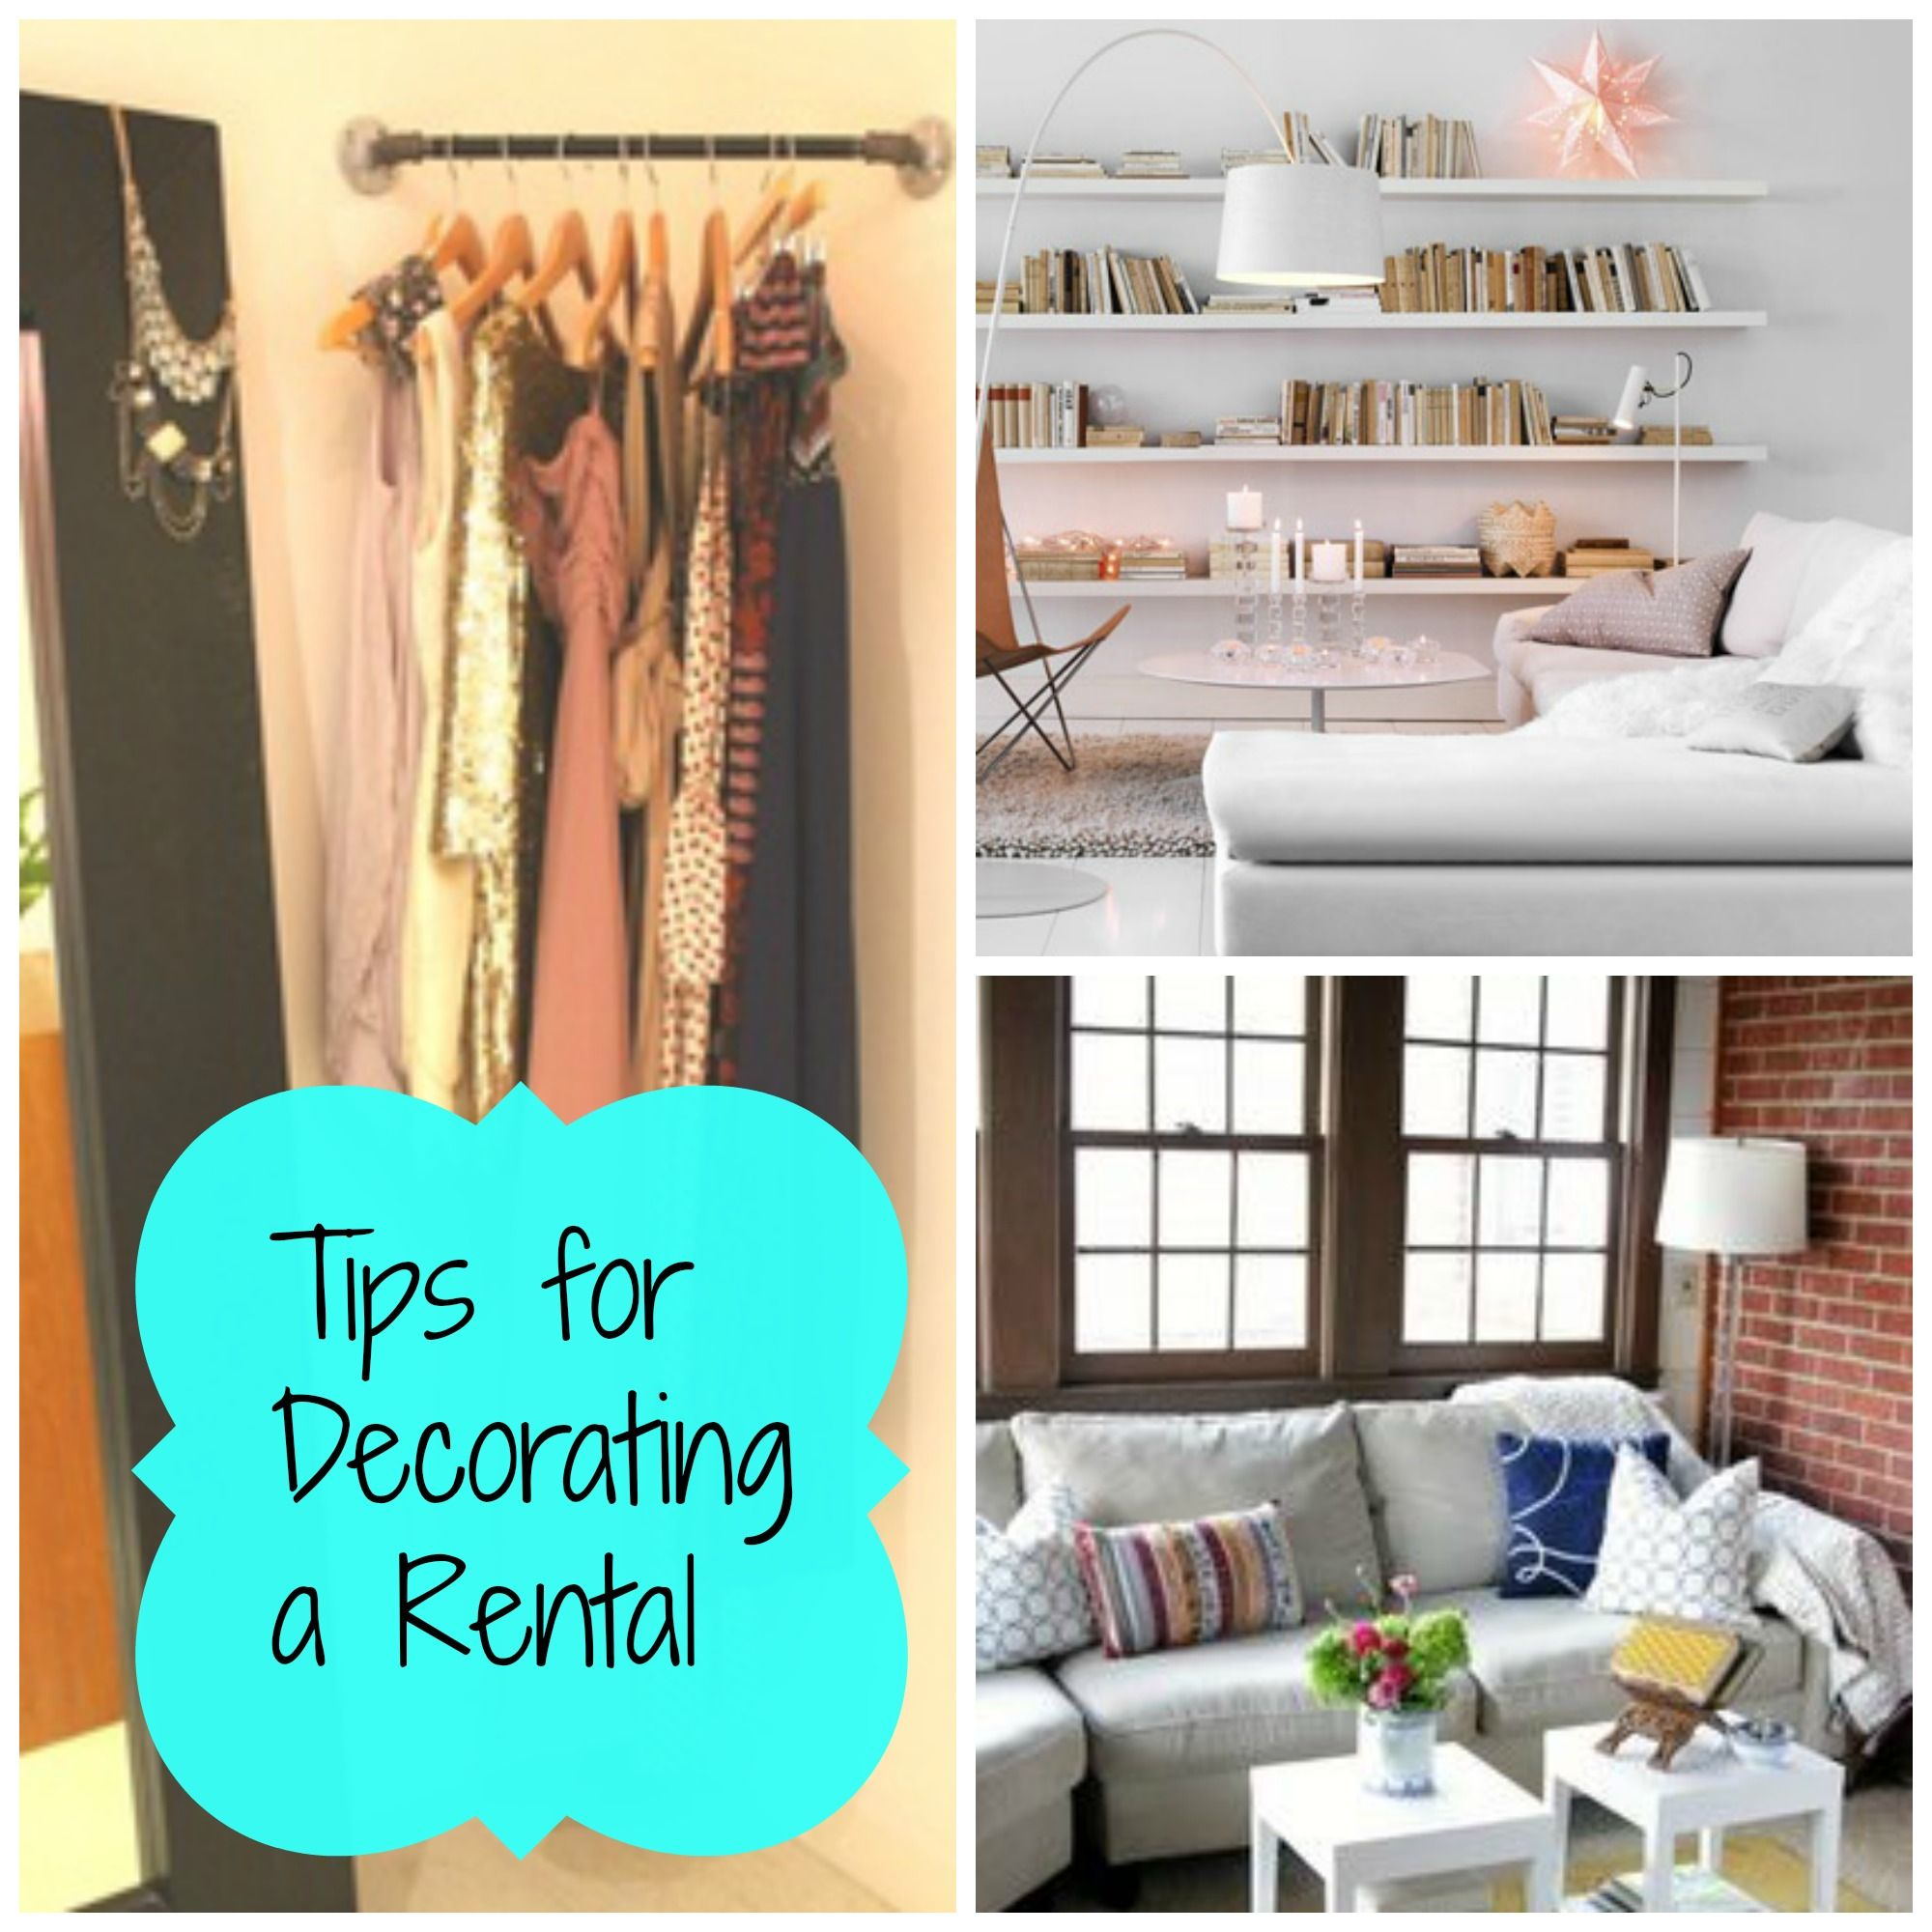 Exceptionnel Tips For Decorating Your Apartment, Rental Home Or Dorm Room On A Budget.